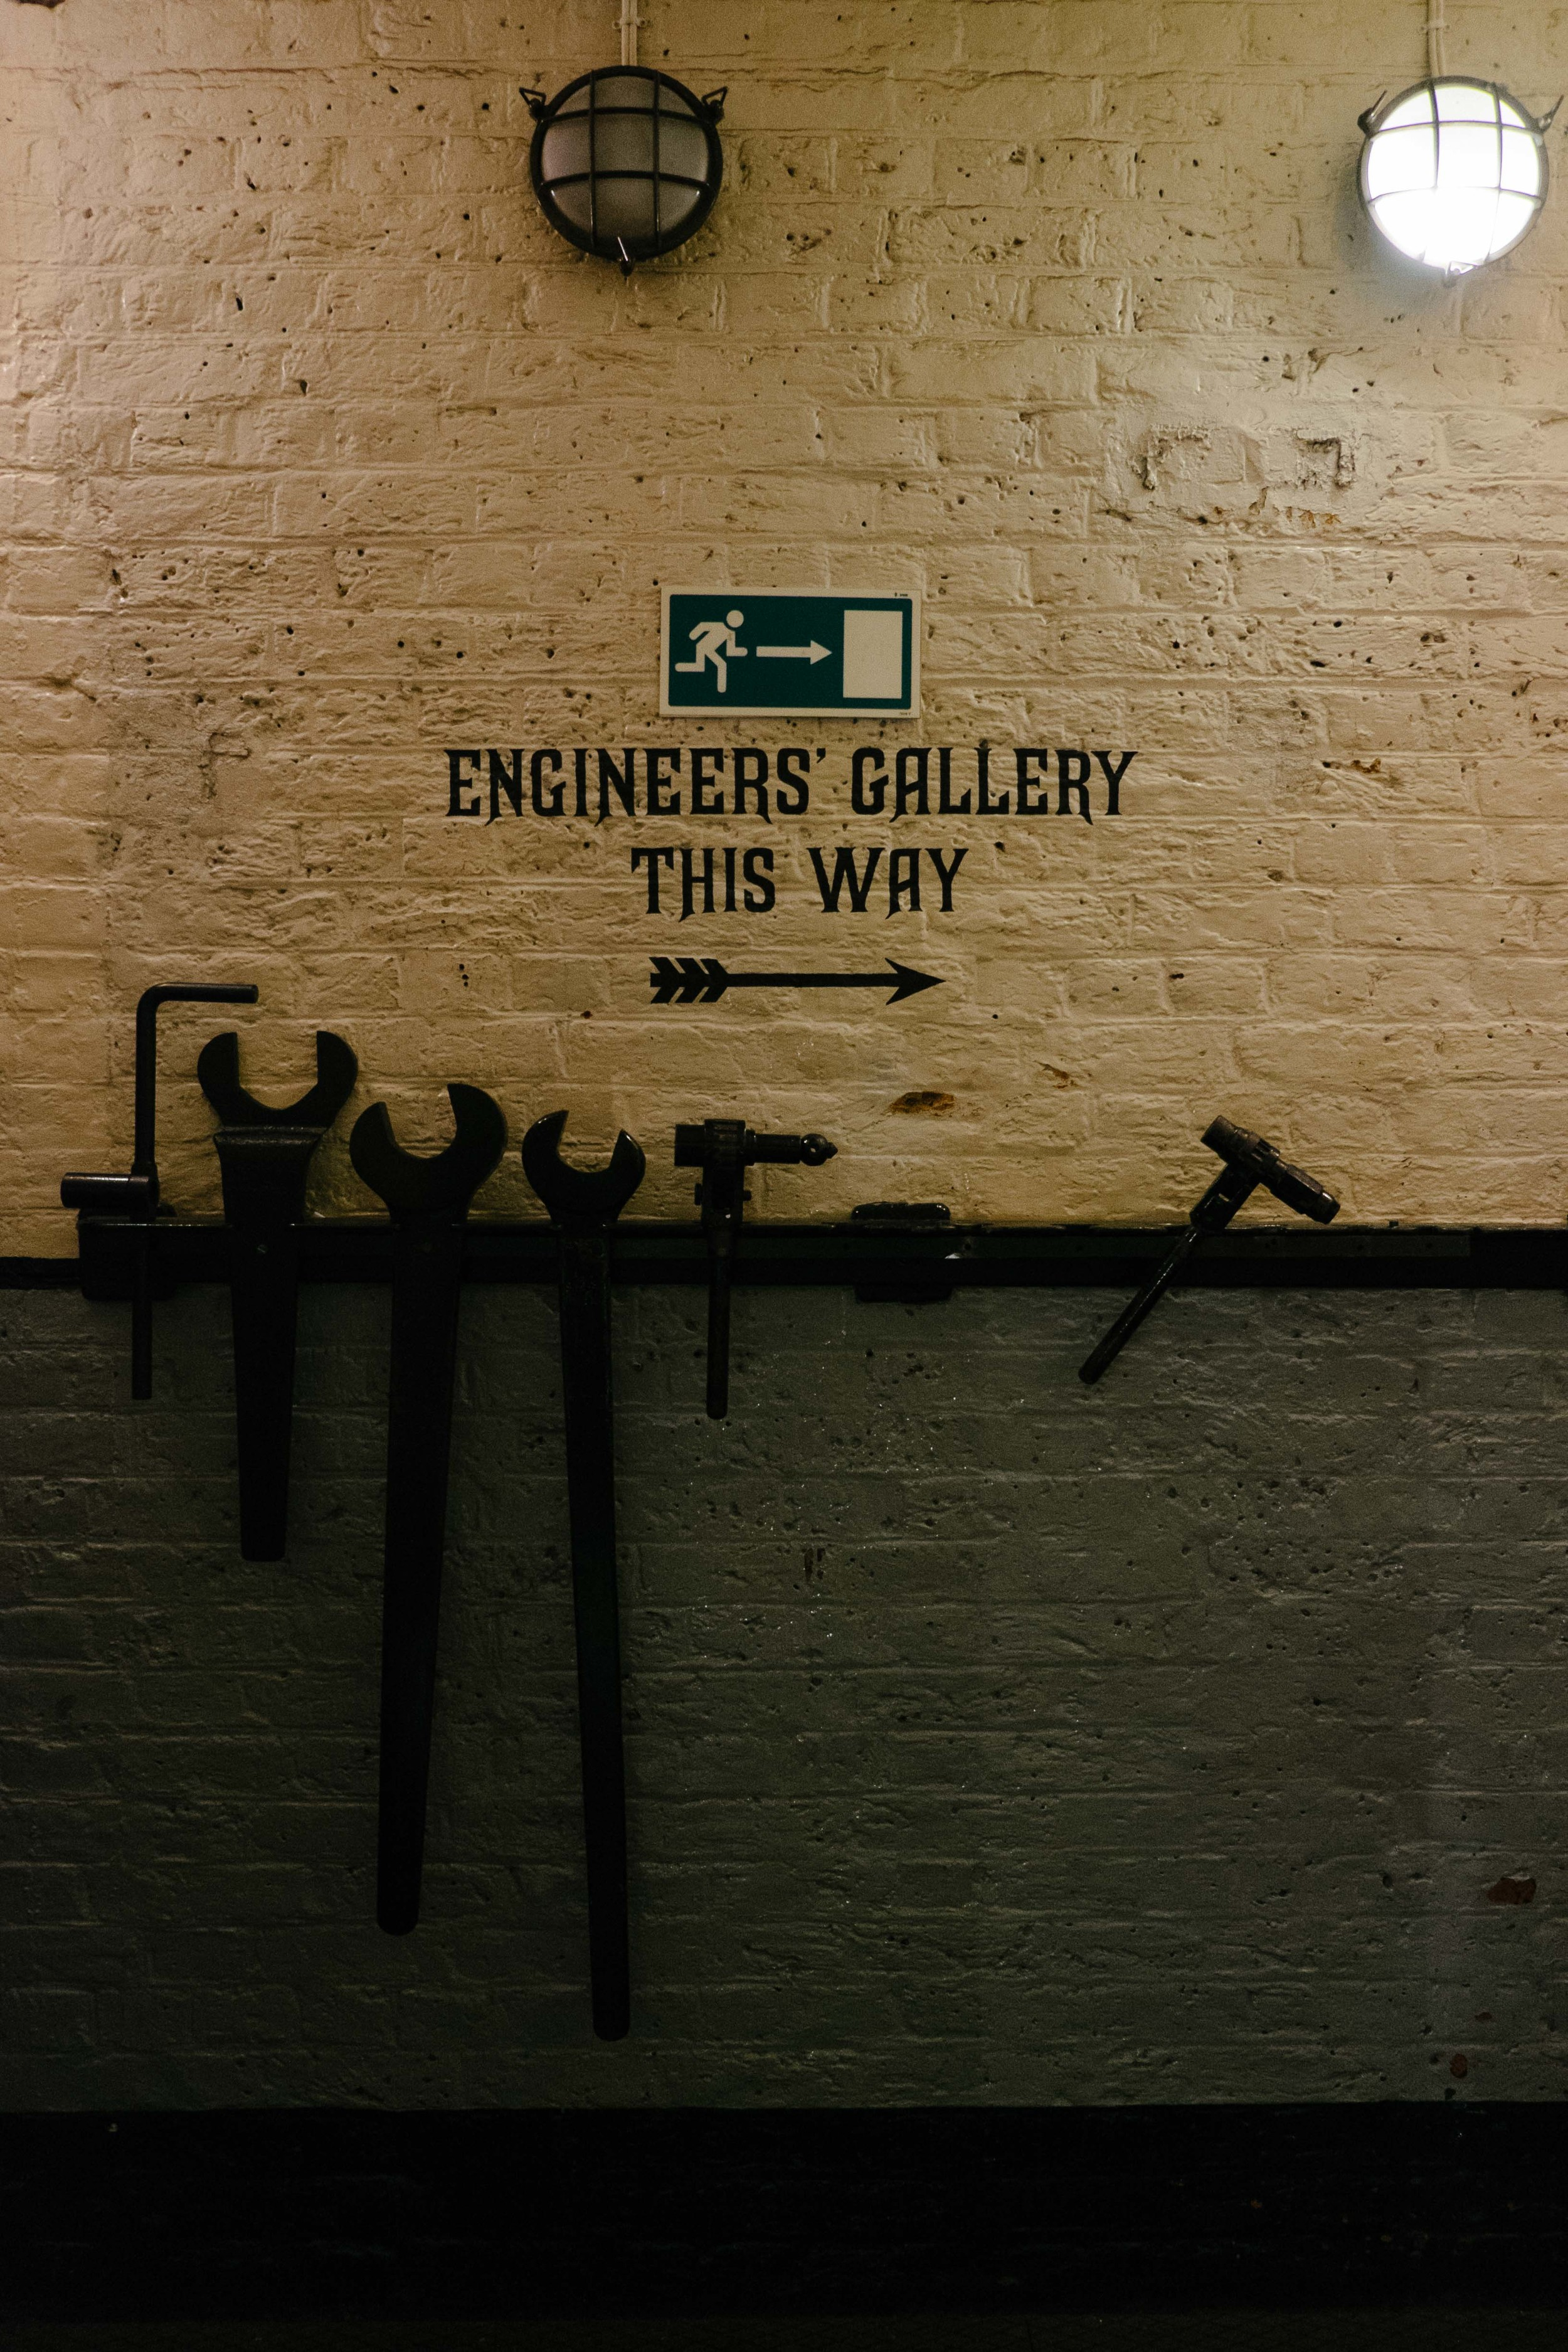 As an Engineer, you have to appreciate this